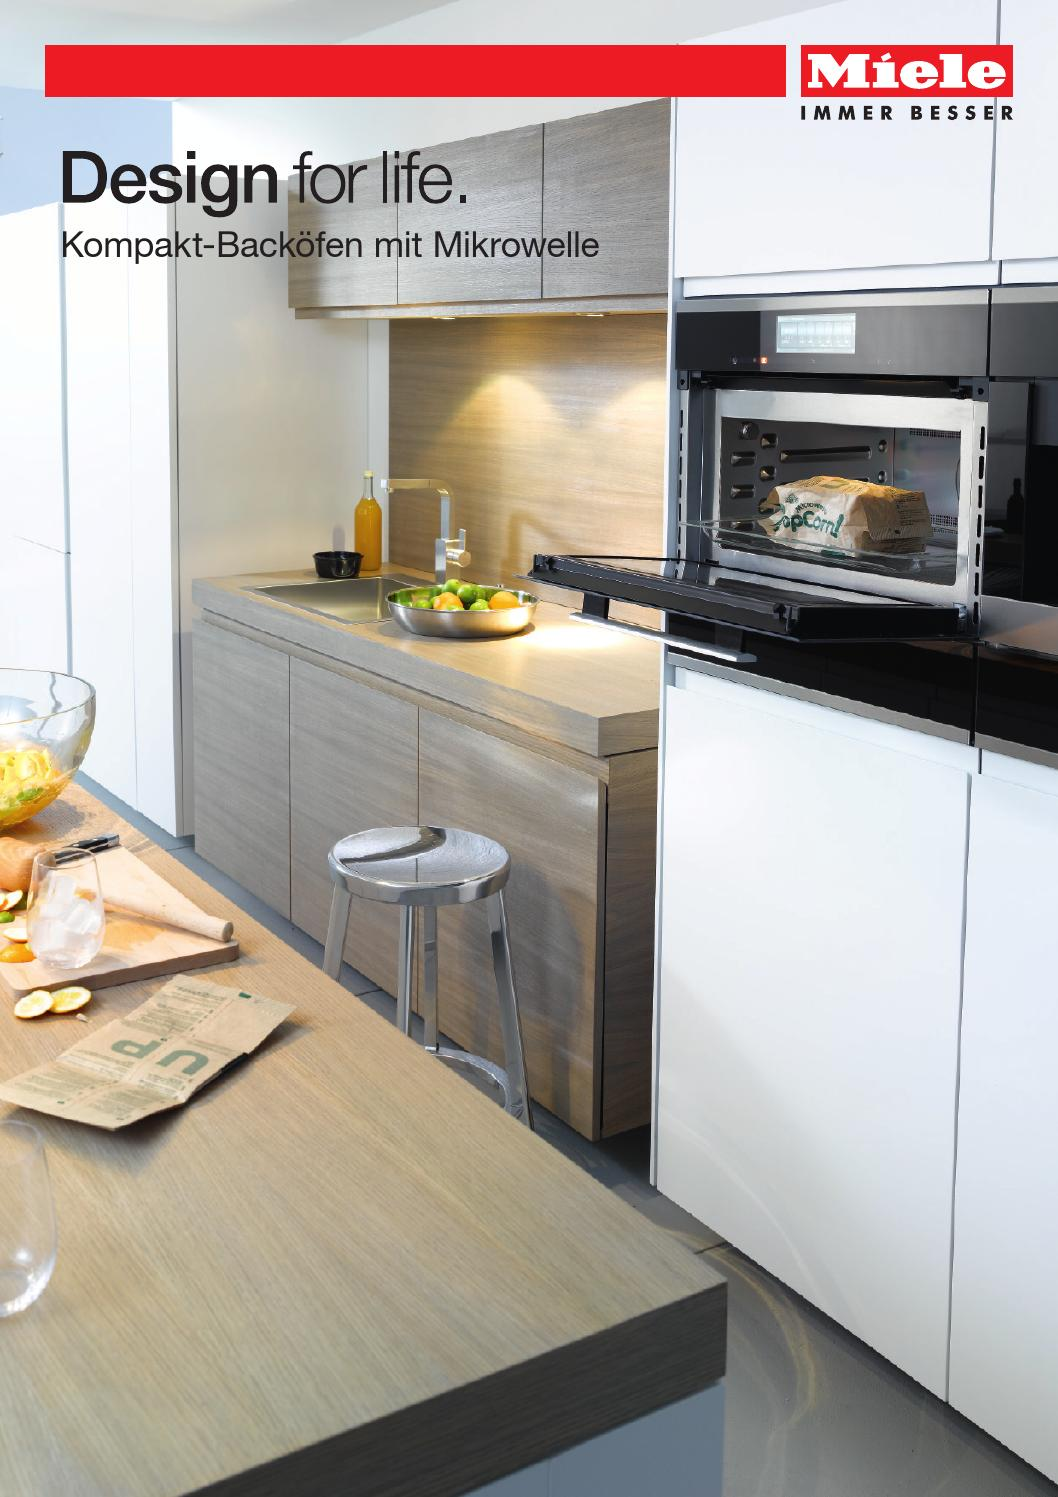 miele produktkatalog kompakt back fen mit mikrowelle. Black Bedroom Furniture Sets. Home Design Ideas